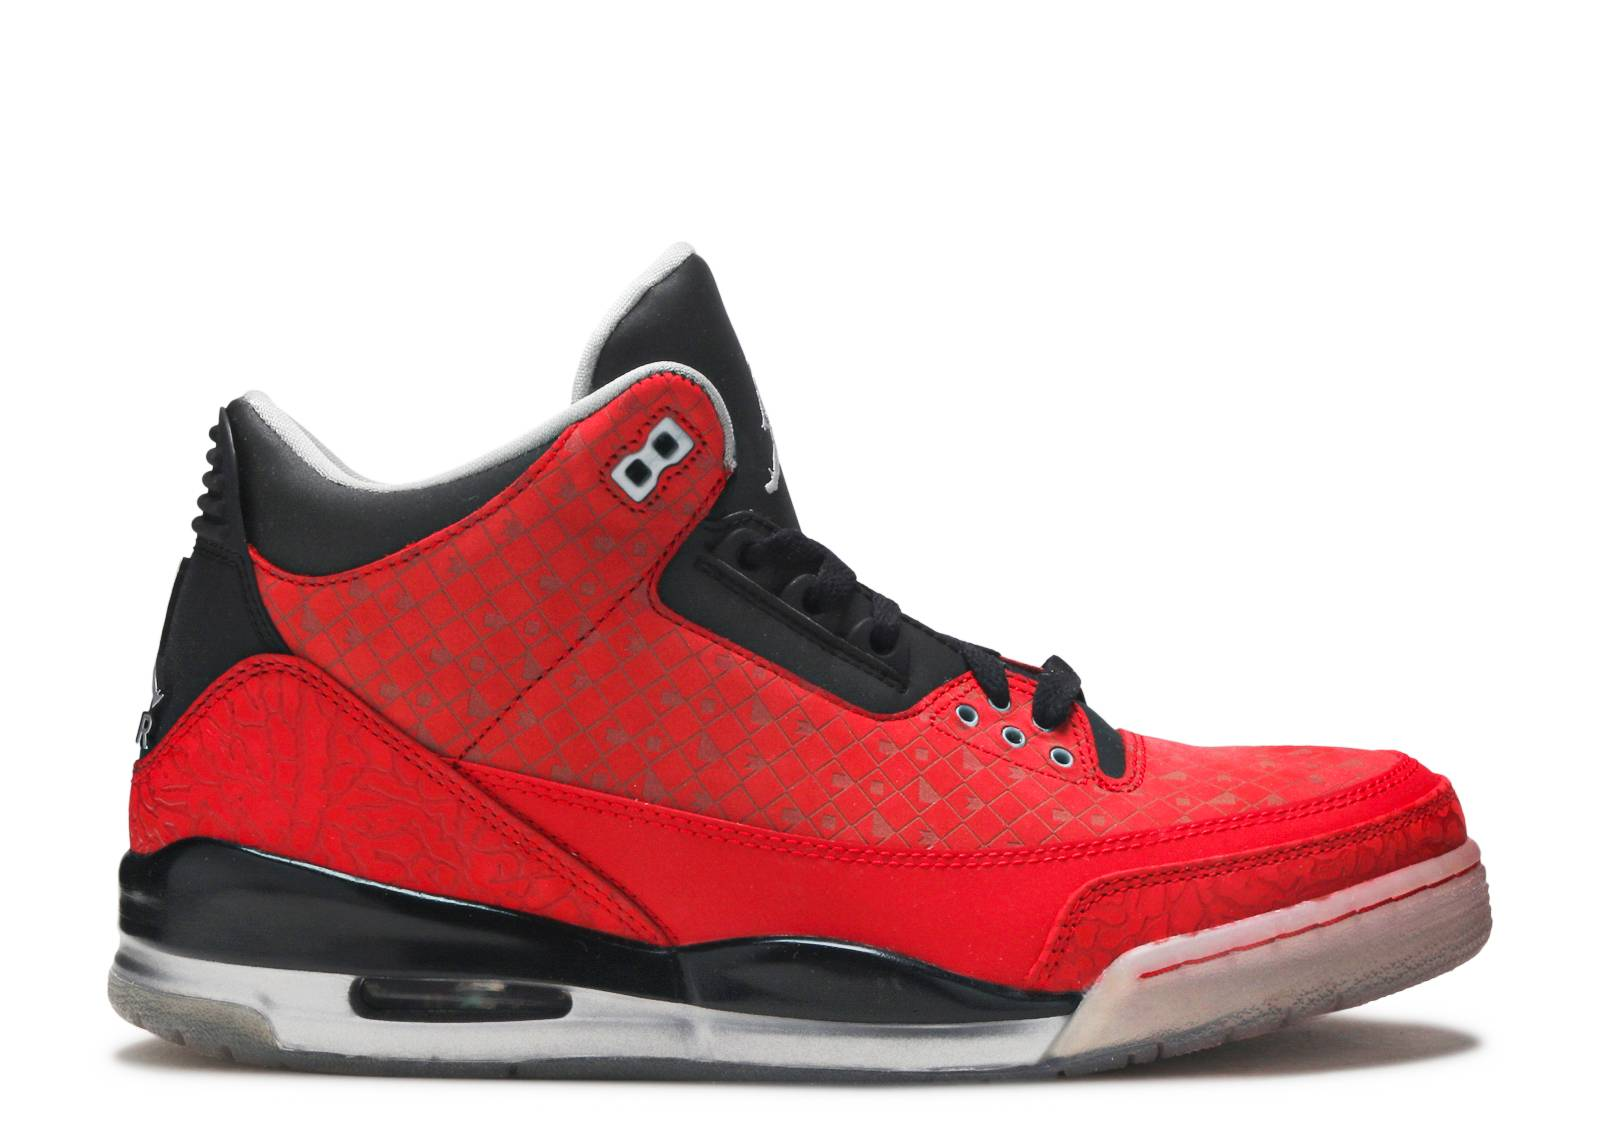 6c4e57cd301 Air Jordan 3 Retro Db